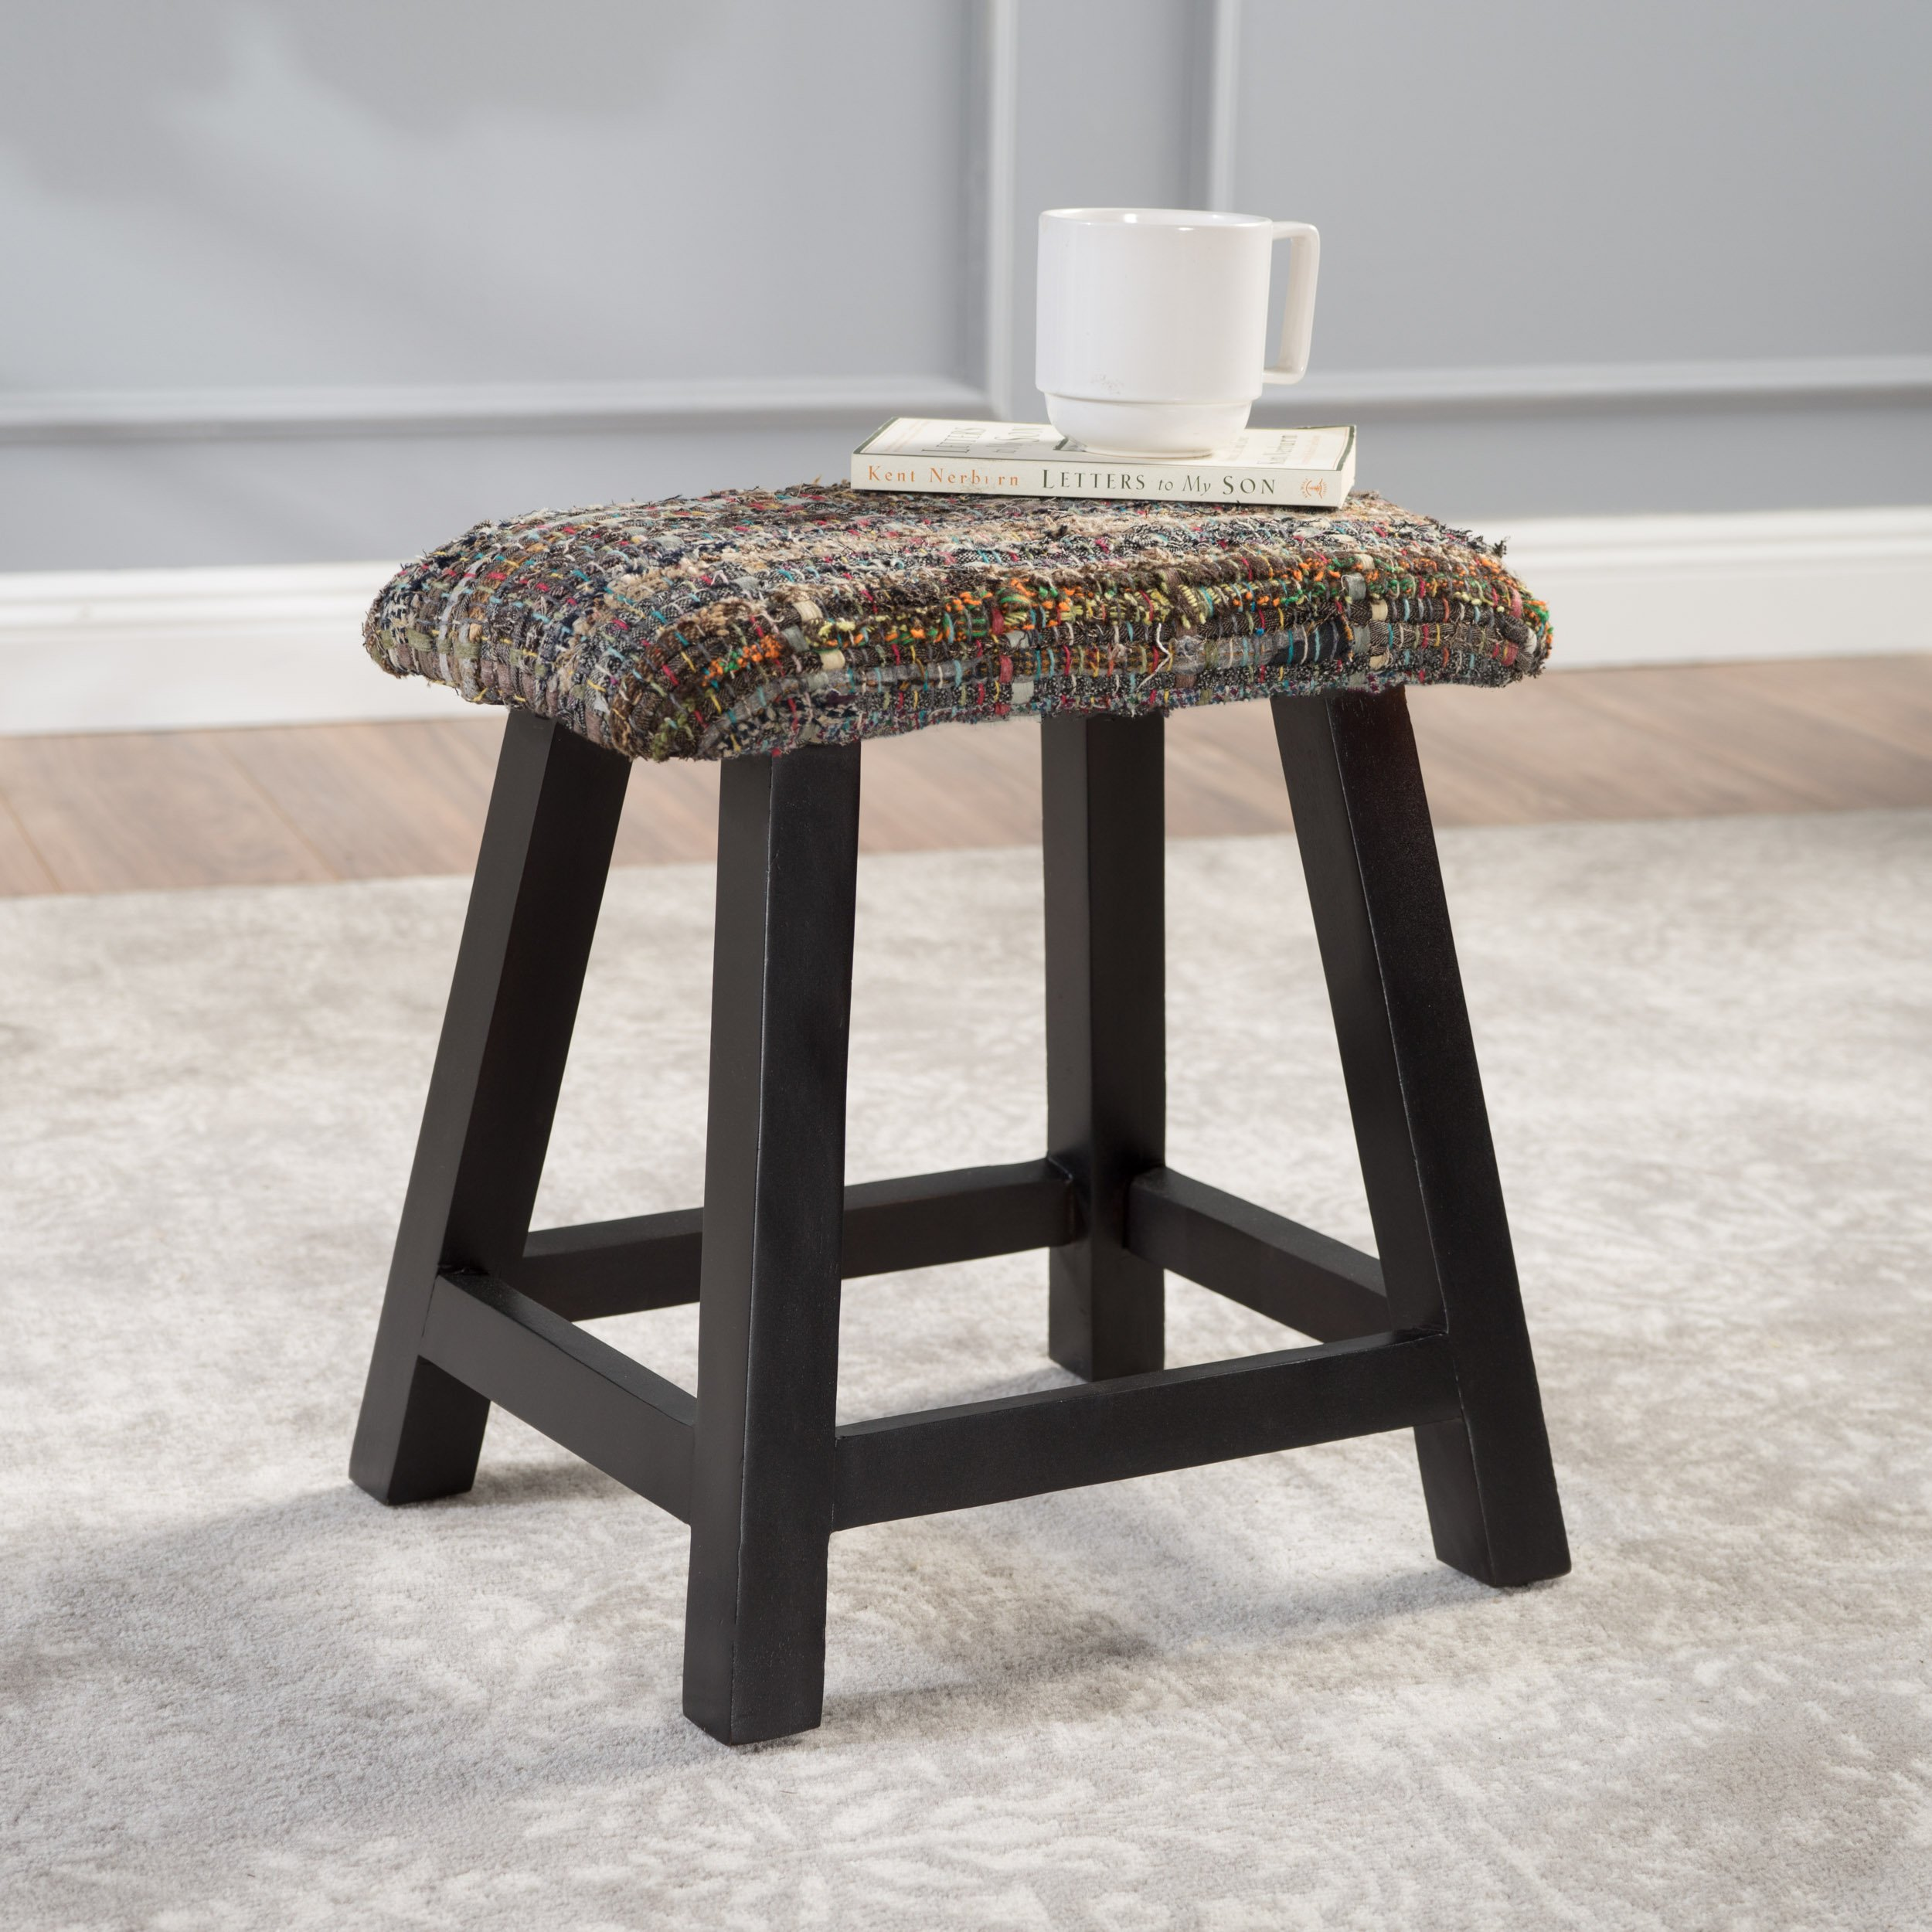 Reese Mixed Color Fabric Handmade Wood Bench (Mixed Color Grey)